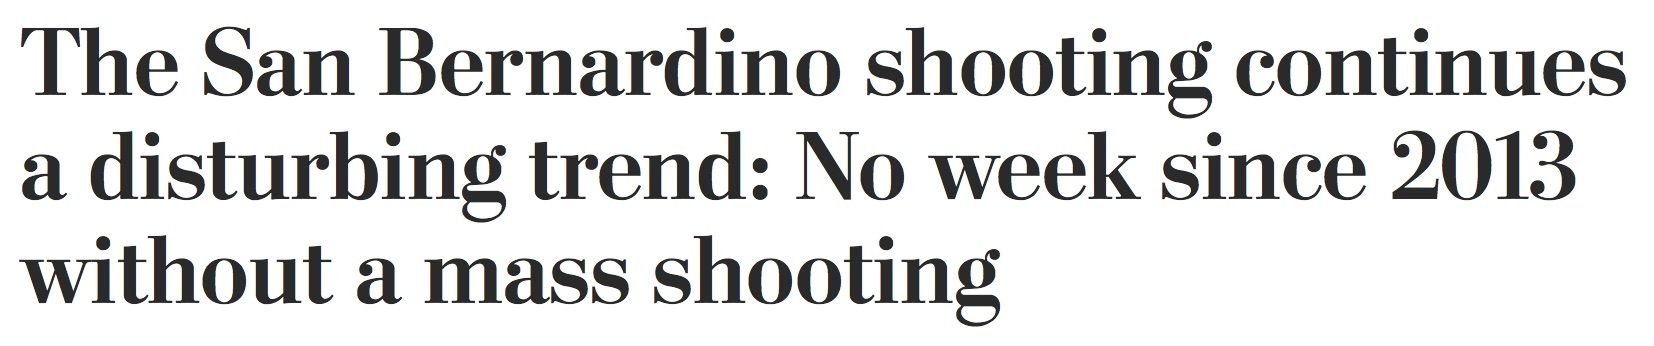 mass-shooting-headline-2Dec2015